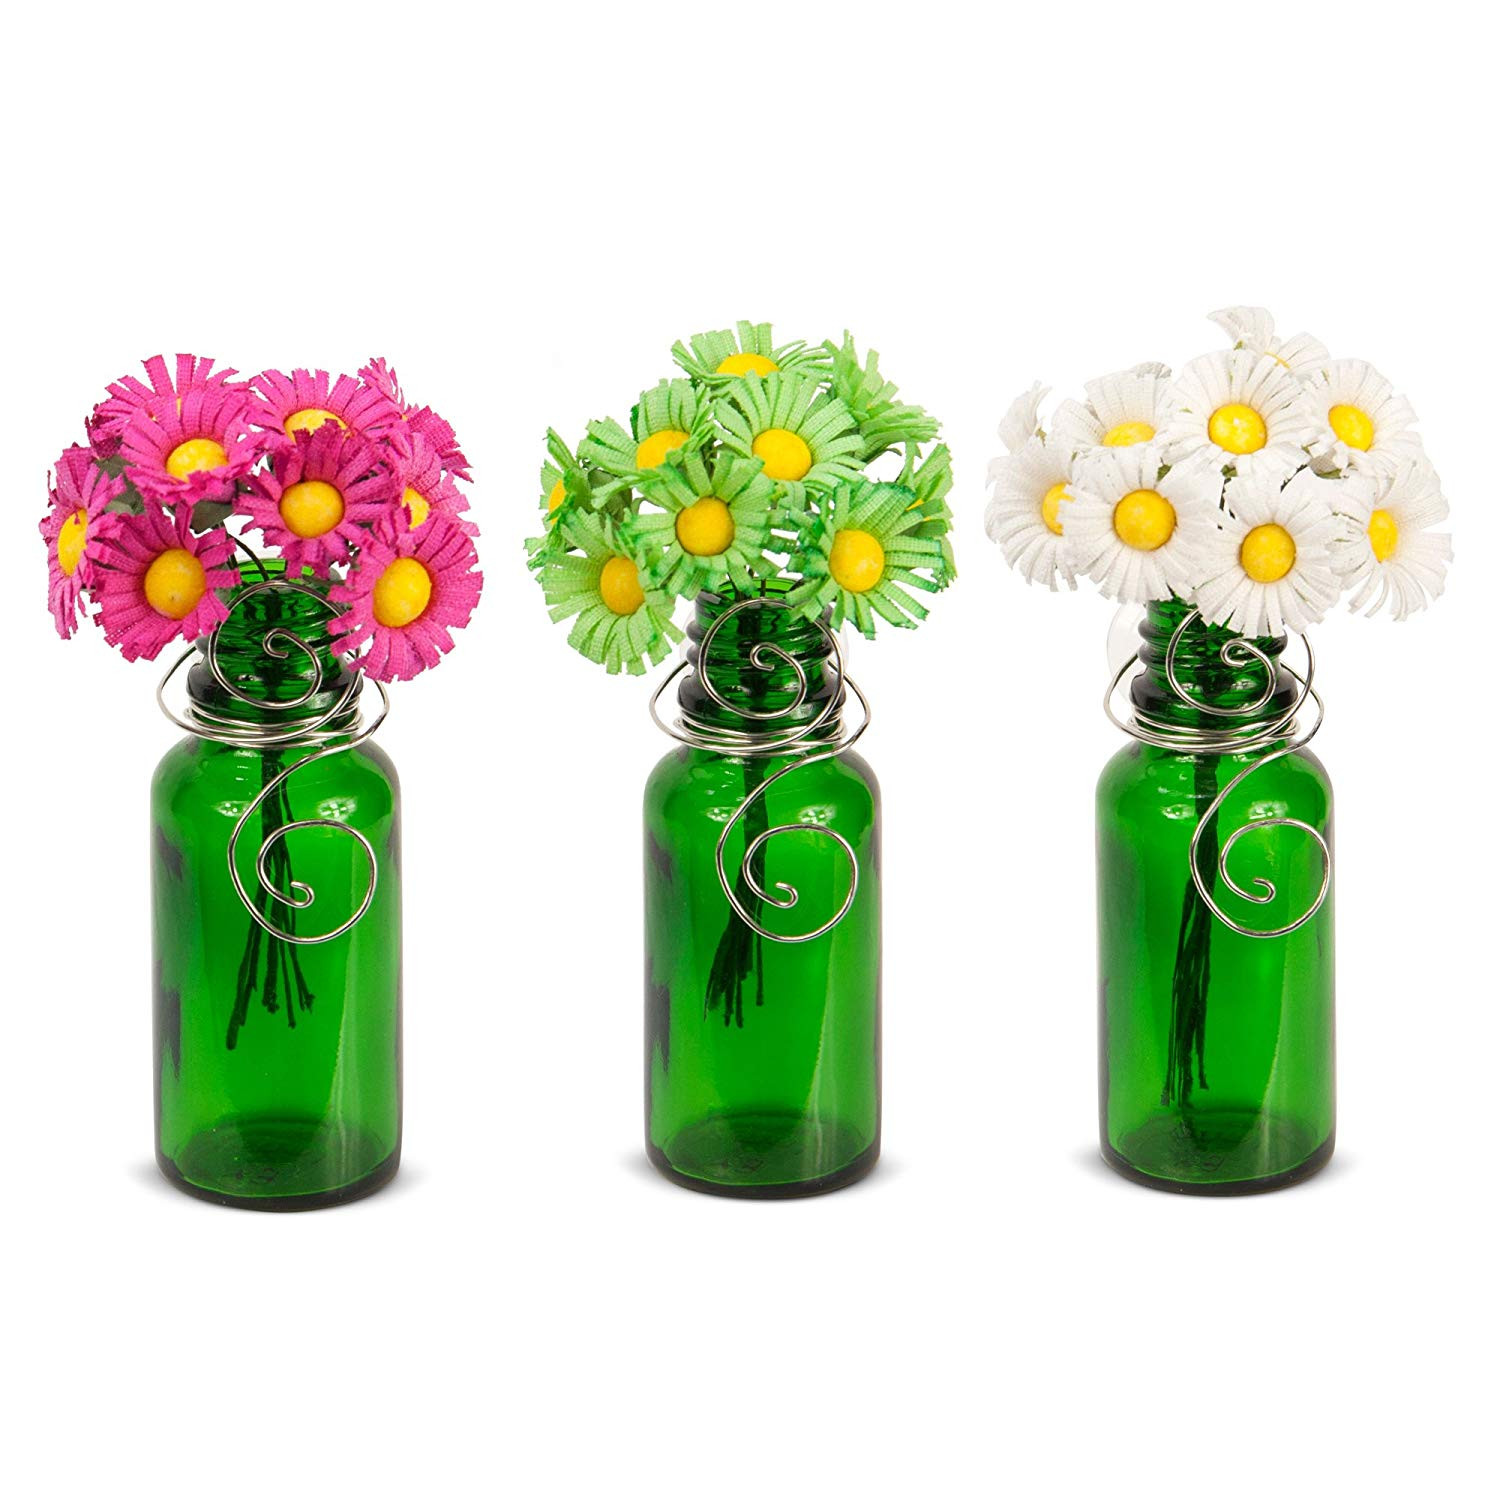 14 attractive Flowers with Vase Free Delivery 2021 free download flowers with vase free delivery of amazon com vazzini mini vase bouquet suction cup bud bottle within amazon com vazzini mini vase bouquet suction cup bud bottle holder with flowers decorati